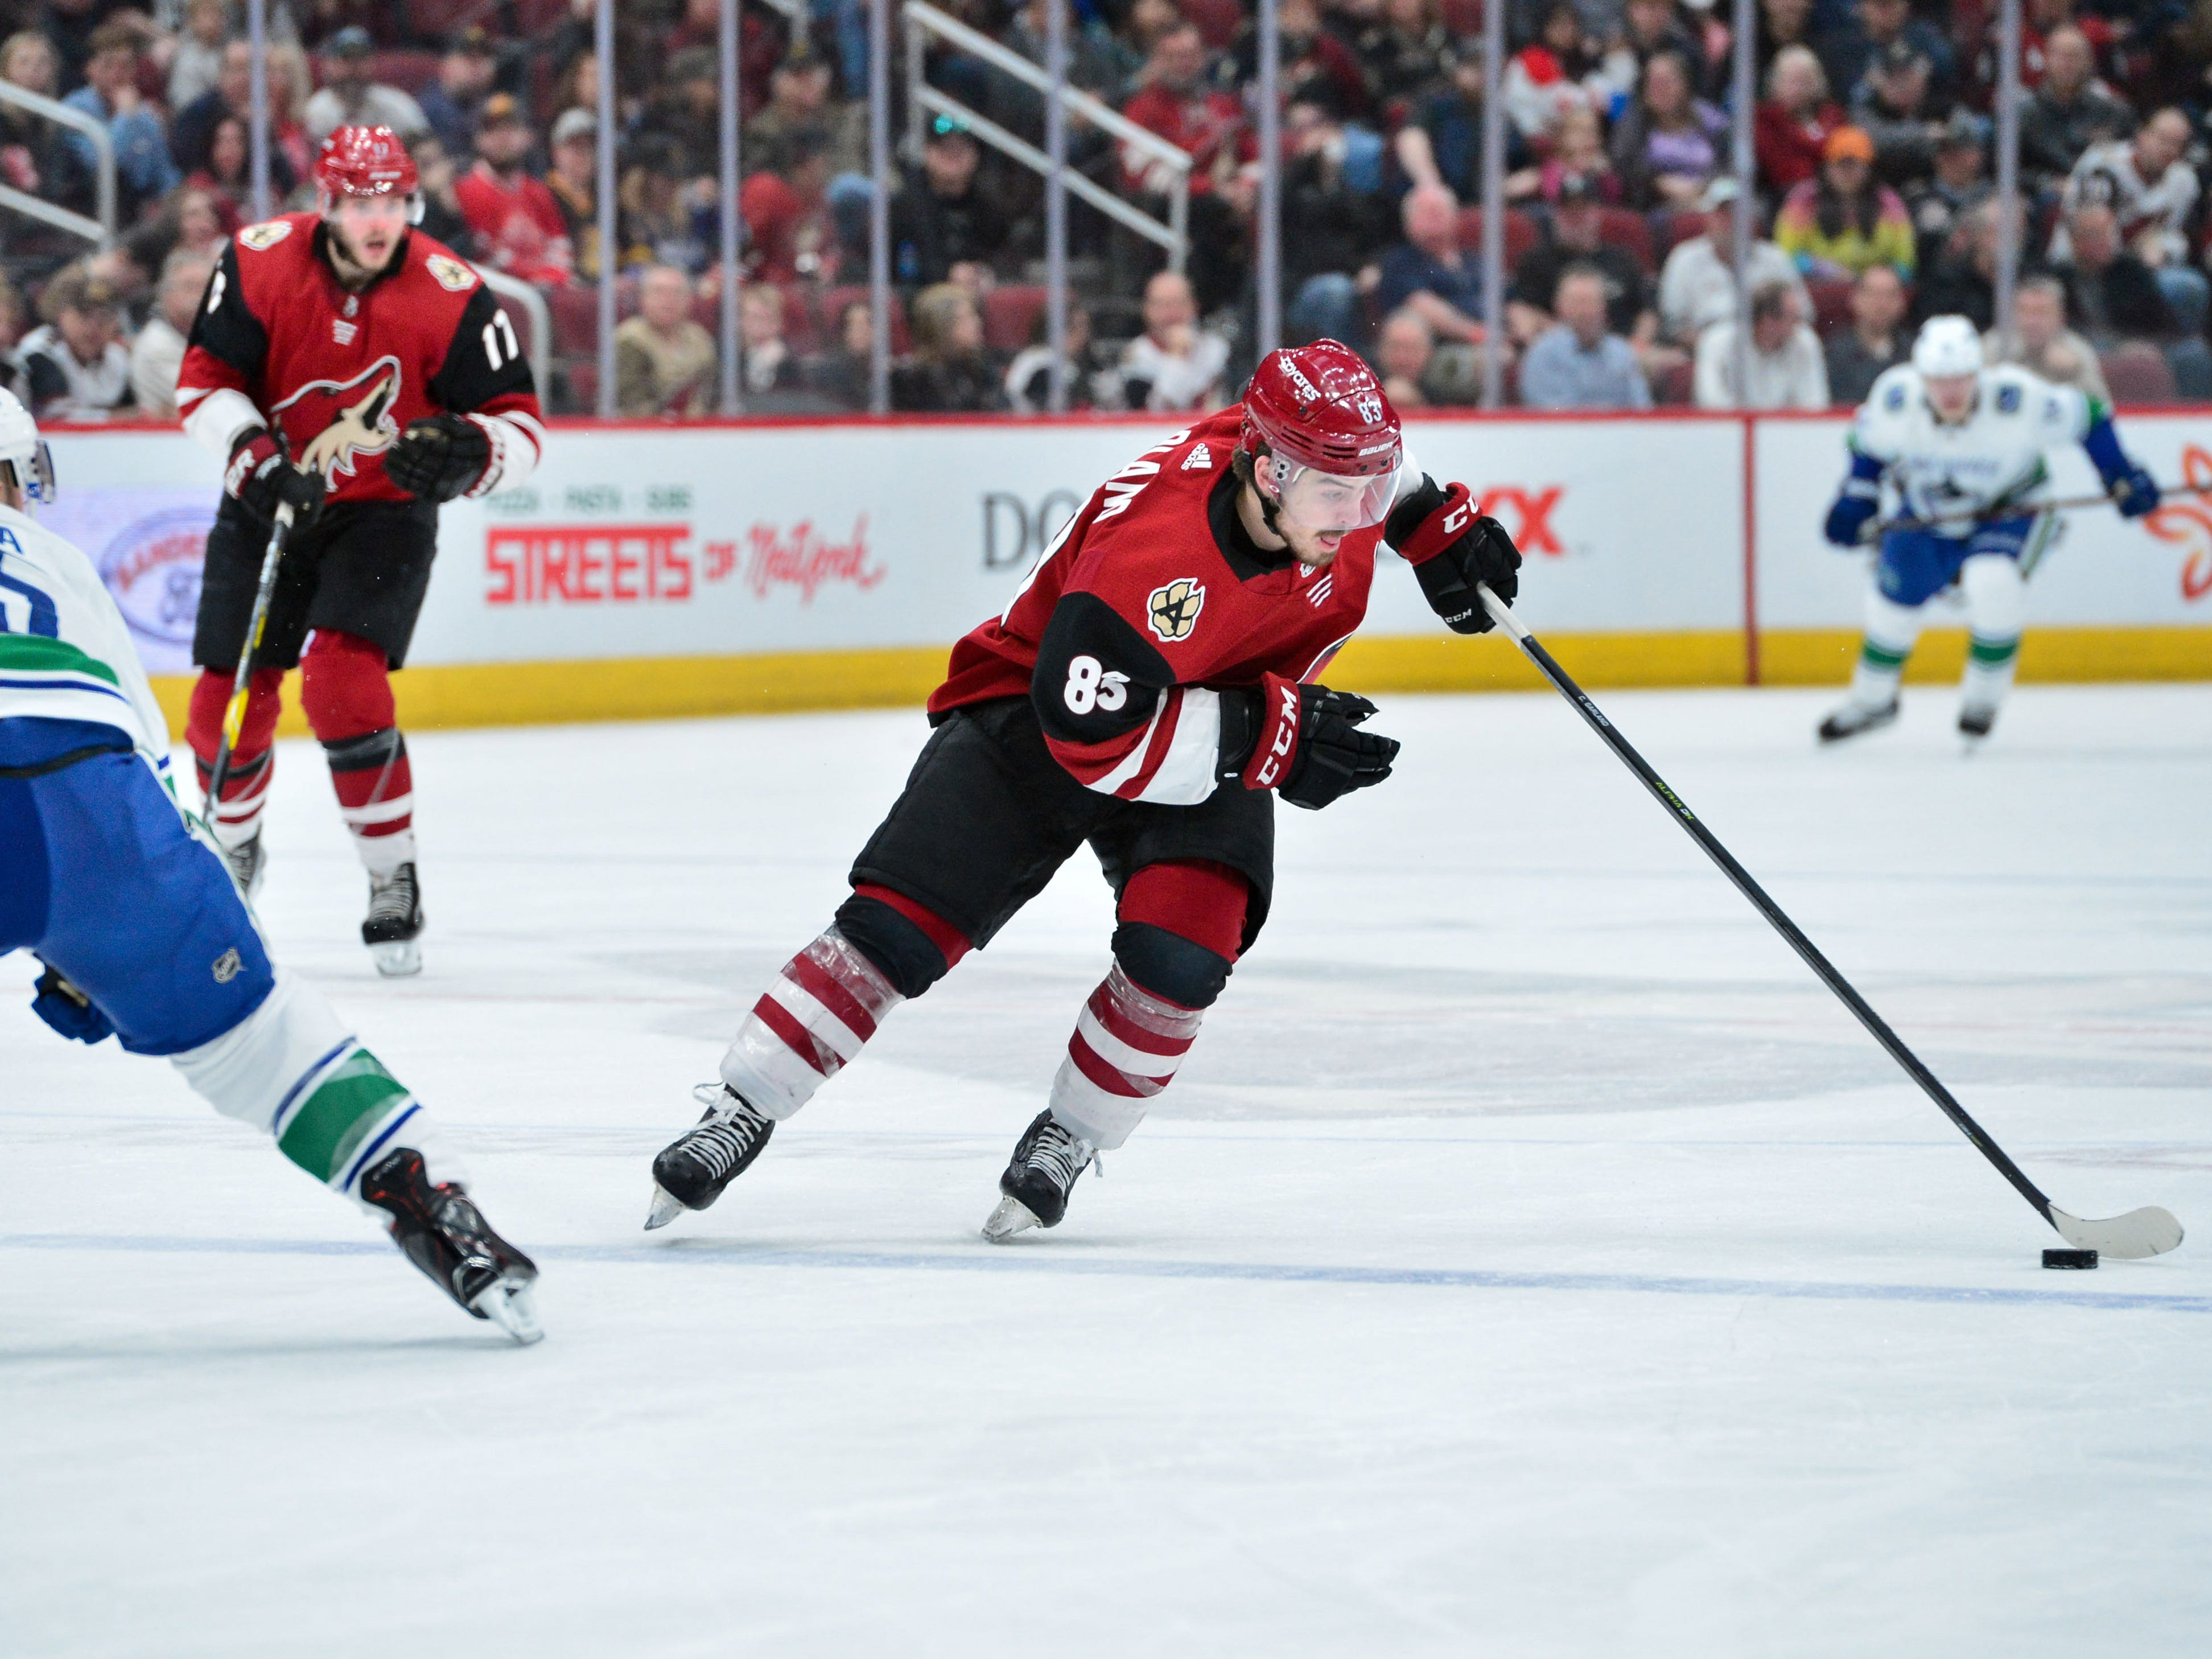 Feb 28, 2019; Glendale, AZ, USA; Arizona Coyotes right wing Conor Garland (83) skates with the puck as Vancouver Canucks defenseman Alex Biega (55) defends during the second period at Gila River Arena.